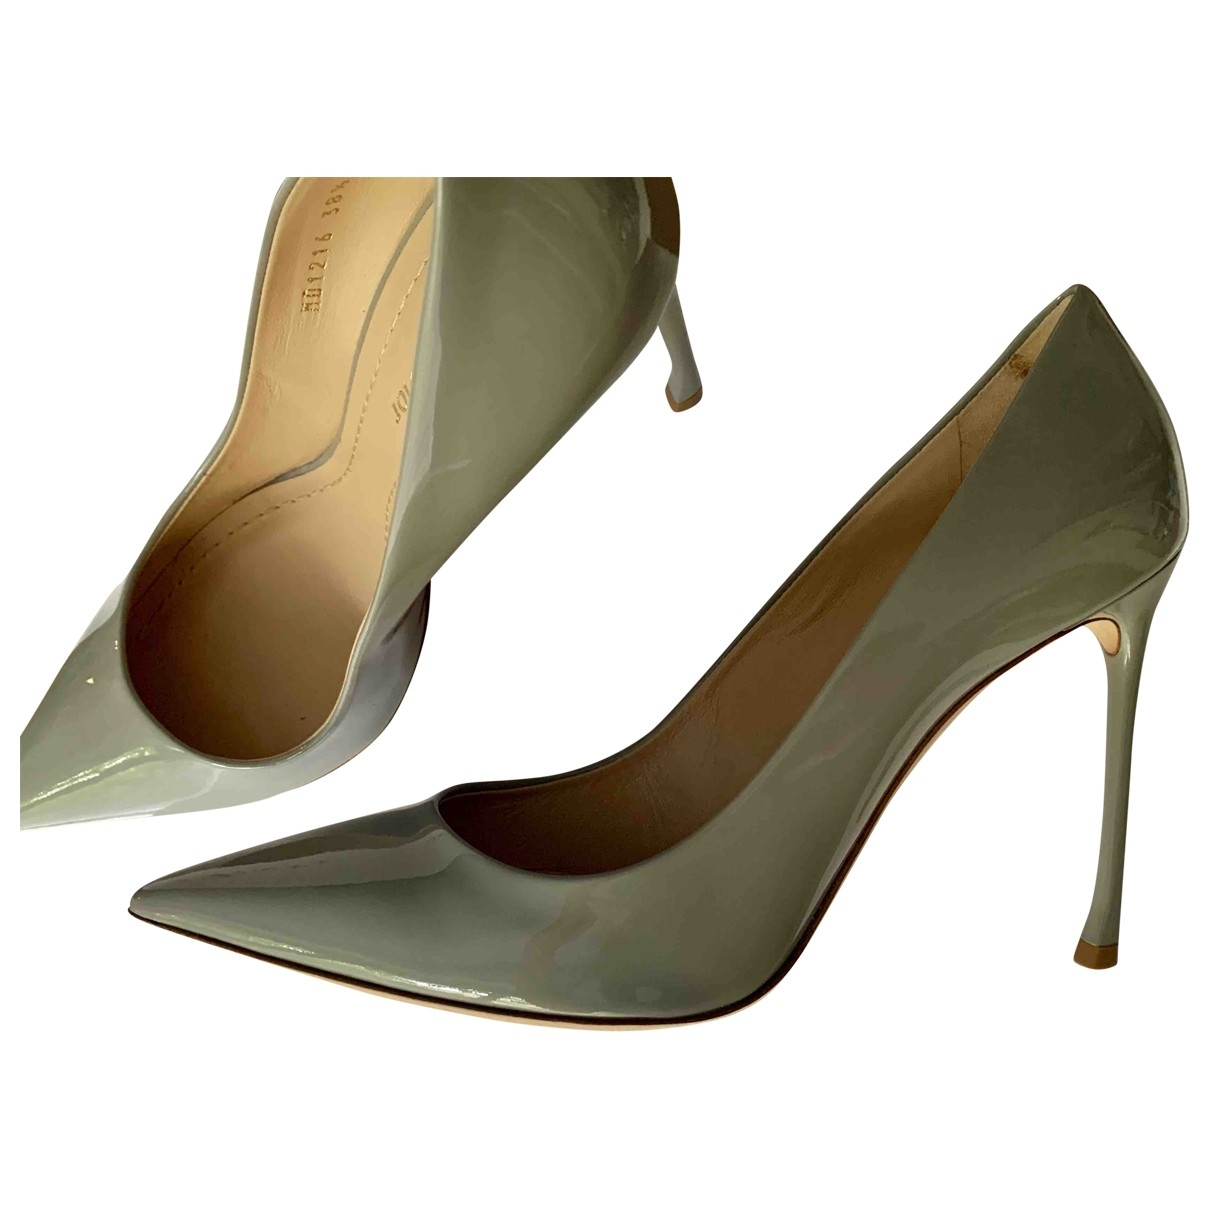 Dior \N Grey Patent leather Heels for Women 38.5 EU